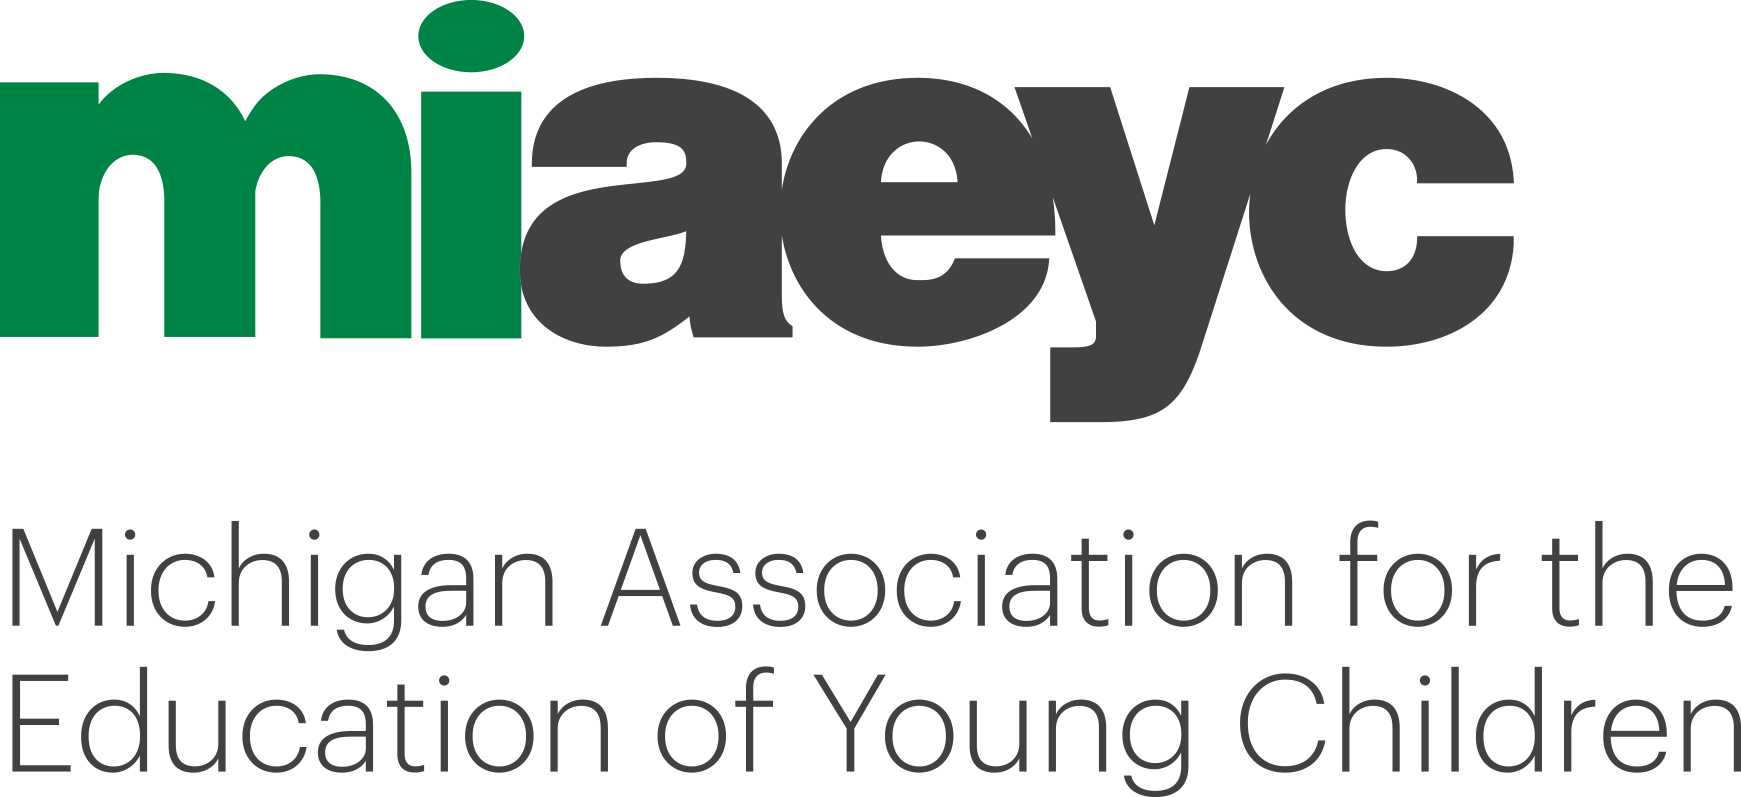 Michigan Association for the Education of Young Children